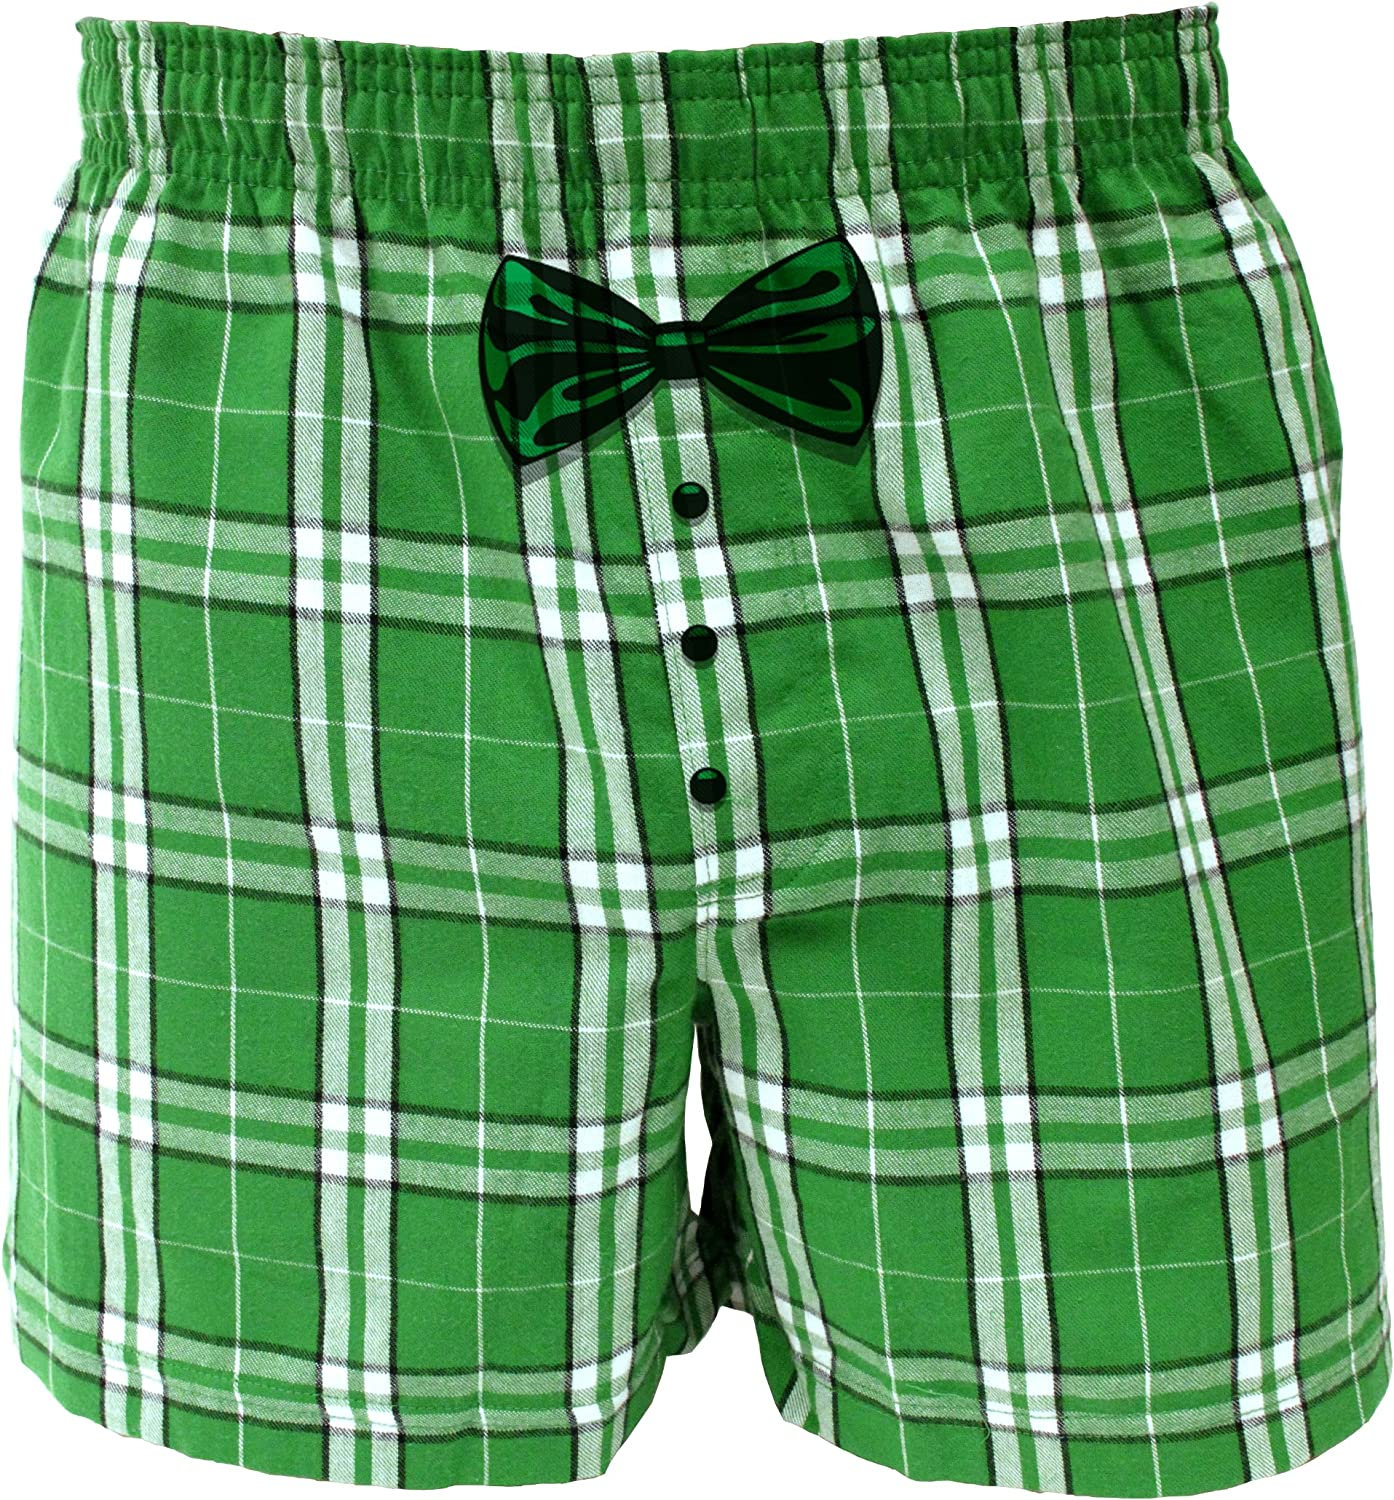 Wanna Popular product see My Shillelagh Or Others Patricks Boxers St NEW Day Green -